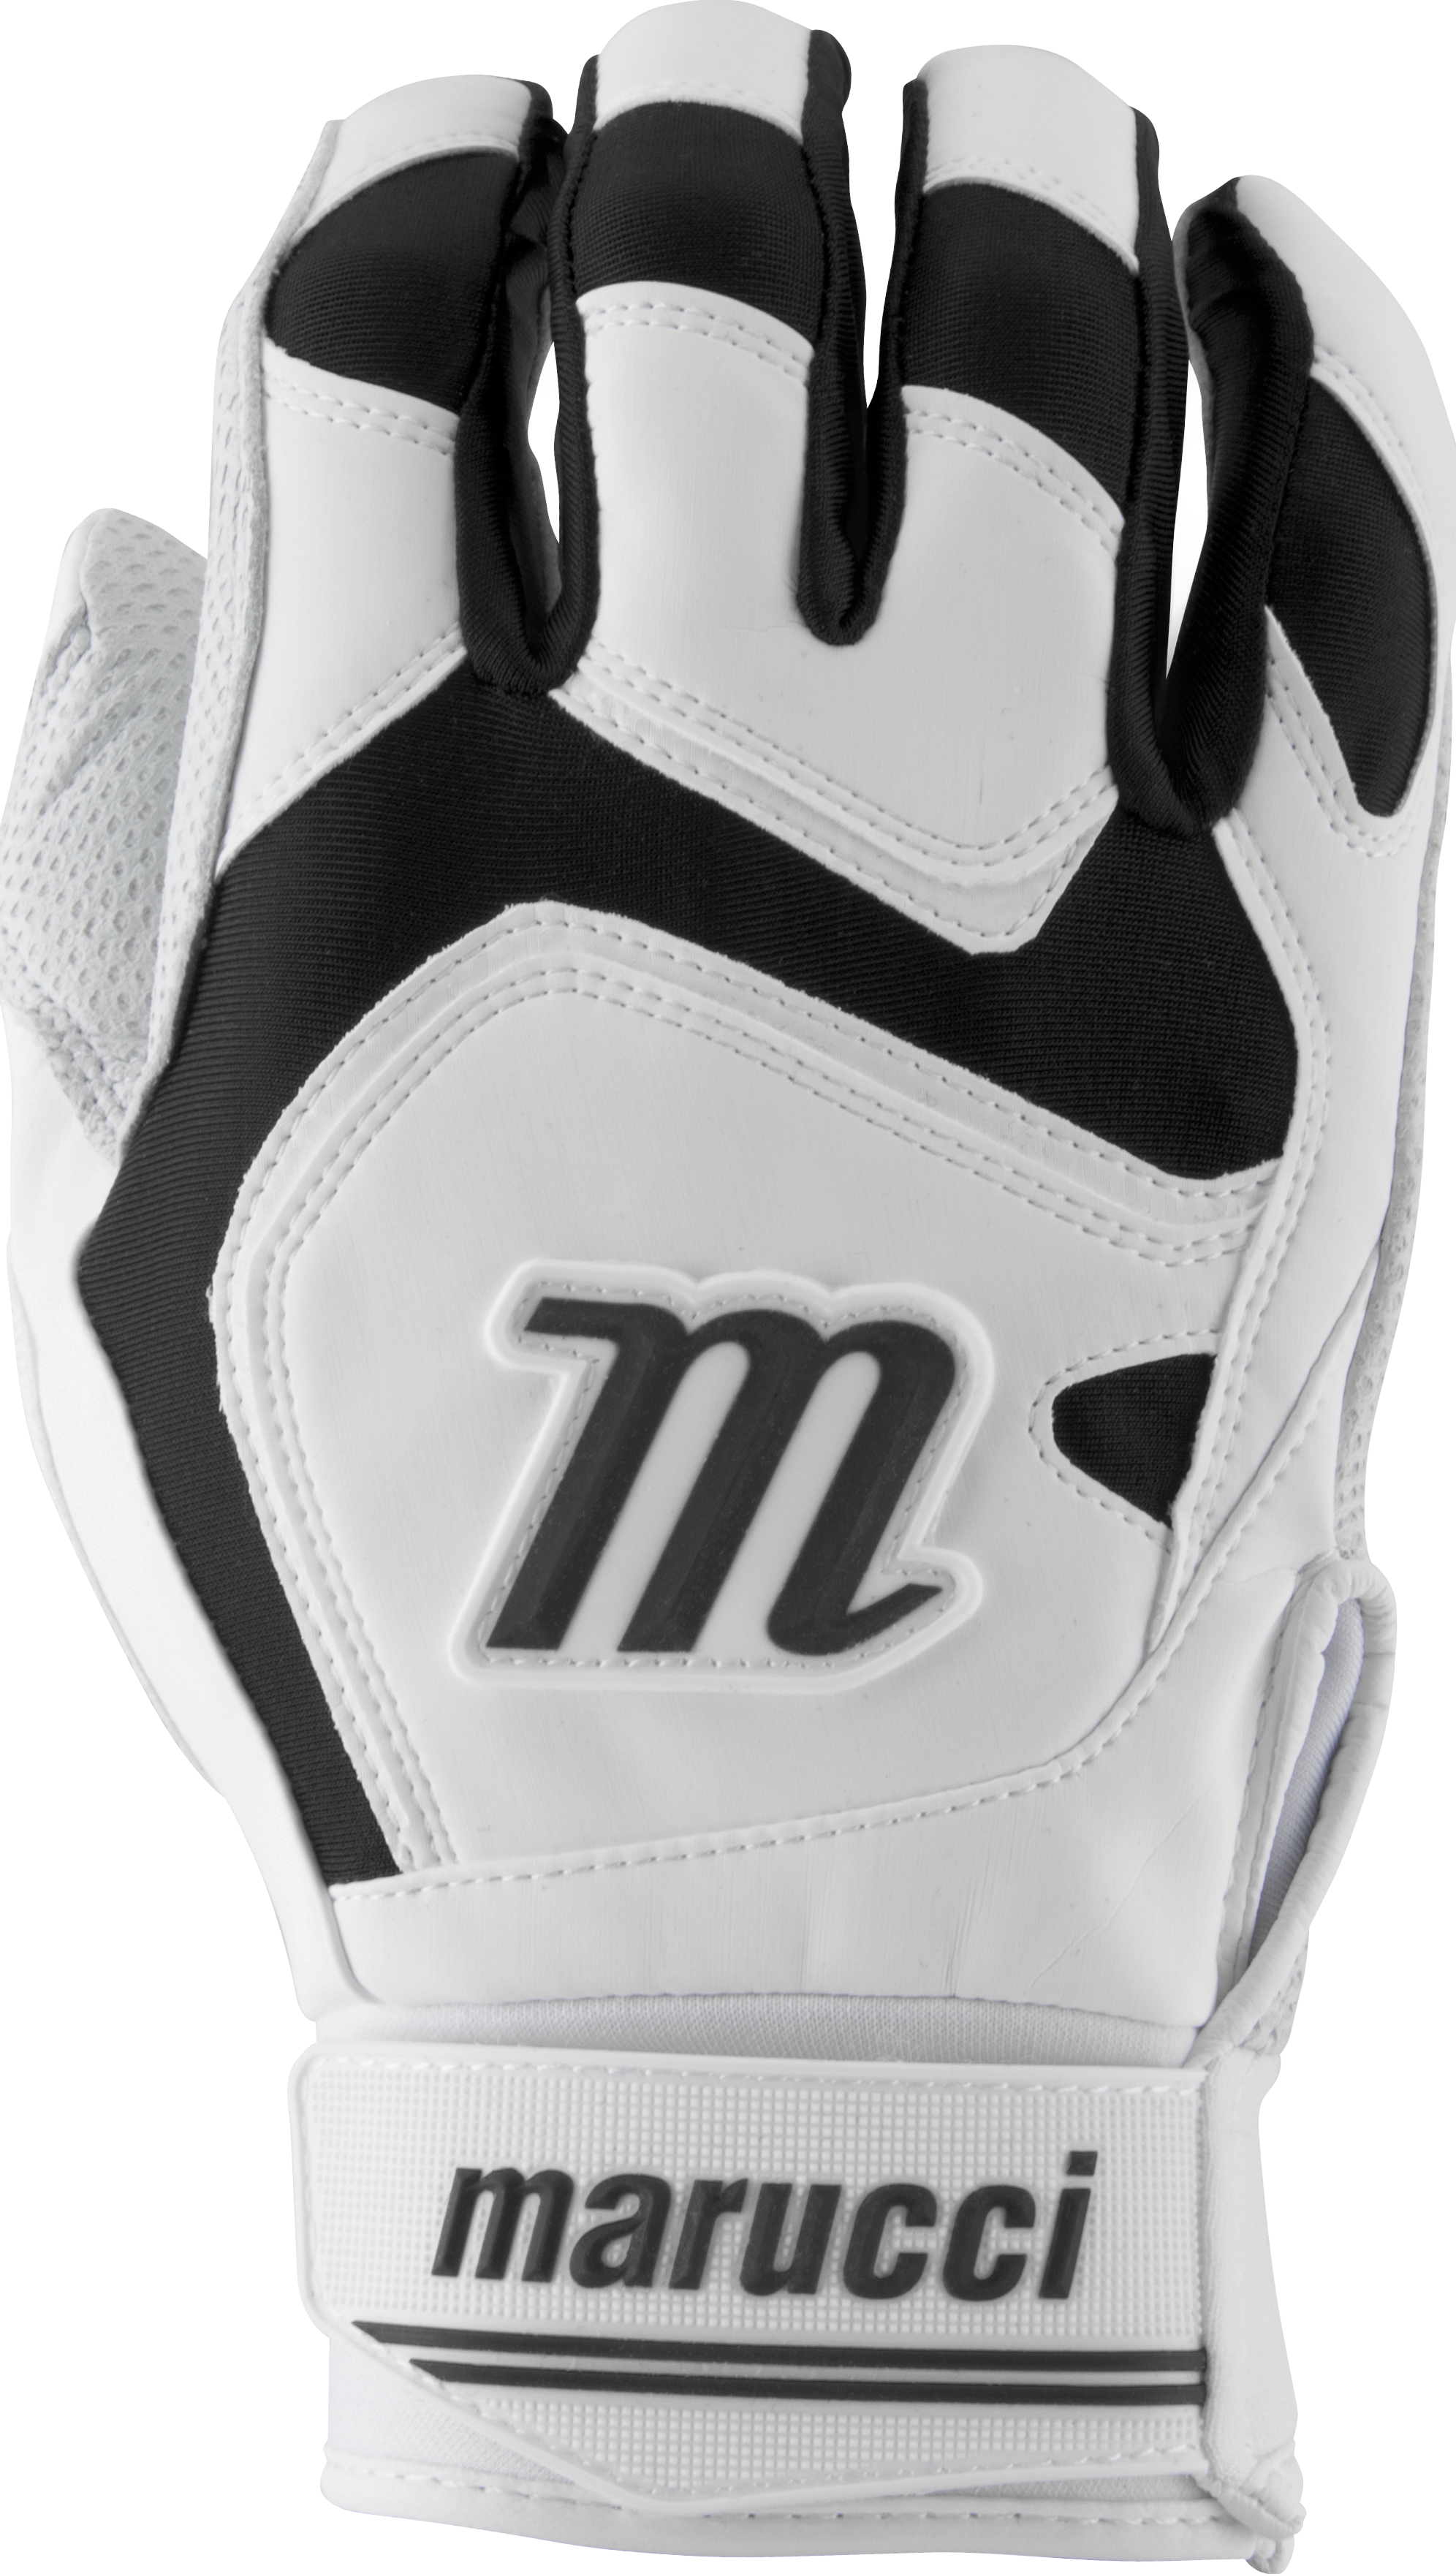 marucci-signature-batting-gloves-mbgsgn2-1-pair-white-black-adult-x-large MBGSGN2-WBK-AXL  849817096611 2019 Model MBGSGN2-W/BK Consistency And Craftsmanship Commitment To Quality And Understanding